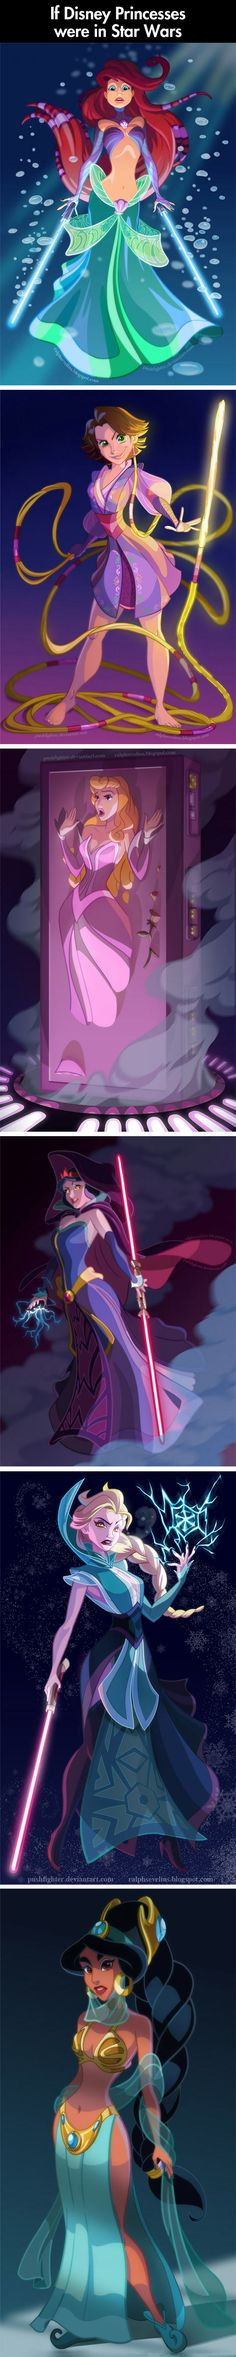 Funny pictures about Disney Princesses In Star Wars. Oh, and cool pics about Disney Princesses In Star Wars. Also, Disney Princesses In Star Wars photos. Walt Disney, Disney Magic, Disney Art, Disney Girls, Disney Stuff, Disney And Dreamworks, Disney Pixar, Disney Characters, Disney Memes